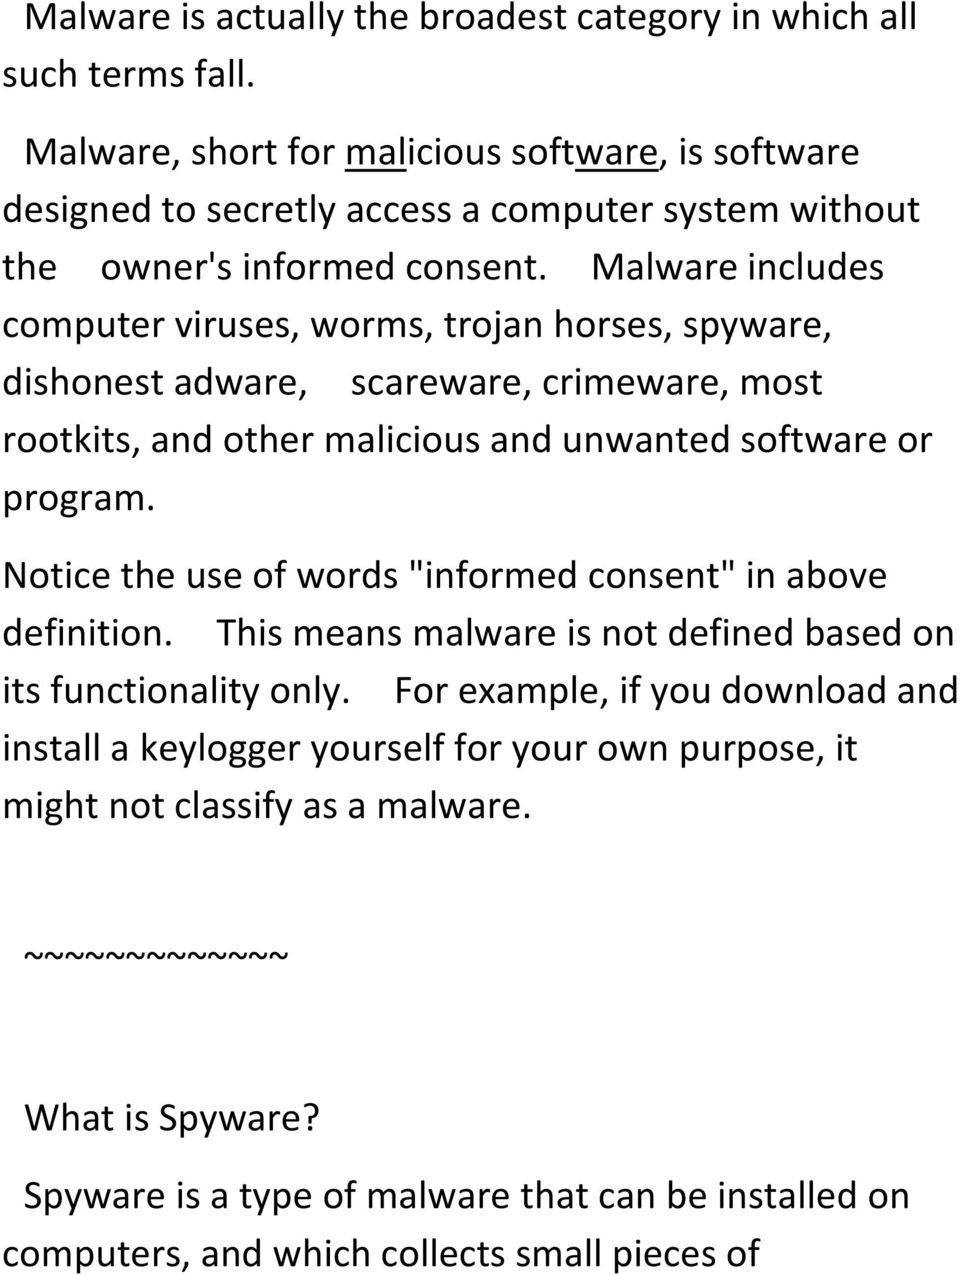 Malware includes computer viruses, worms, trojan horses, spyware, dishonest adware, scareware, crimeware, most rootkits, and other malicious and unwanted software or program.